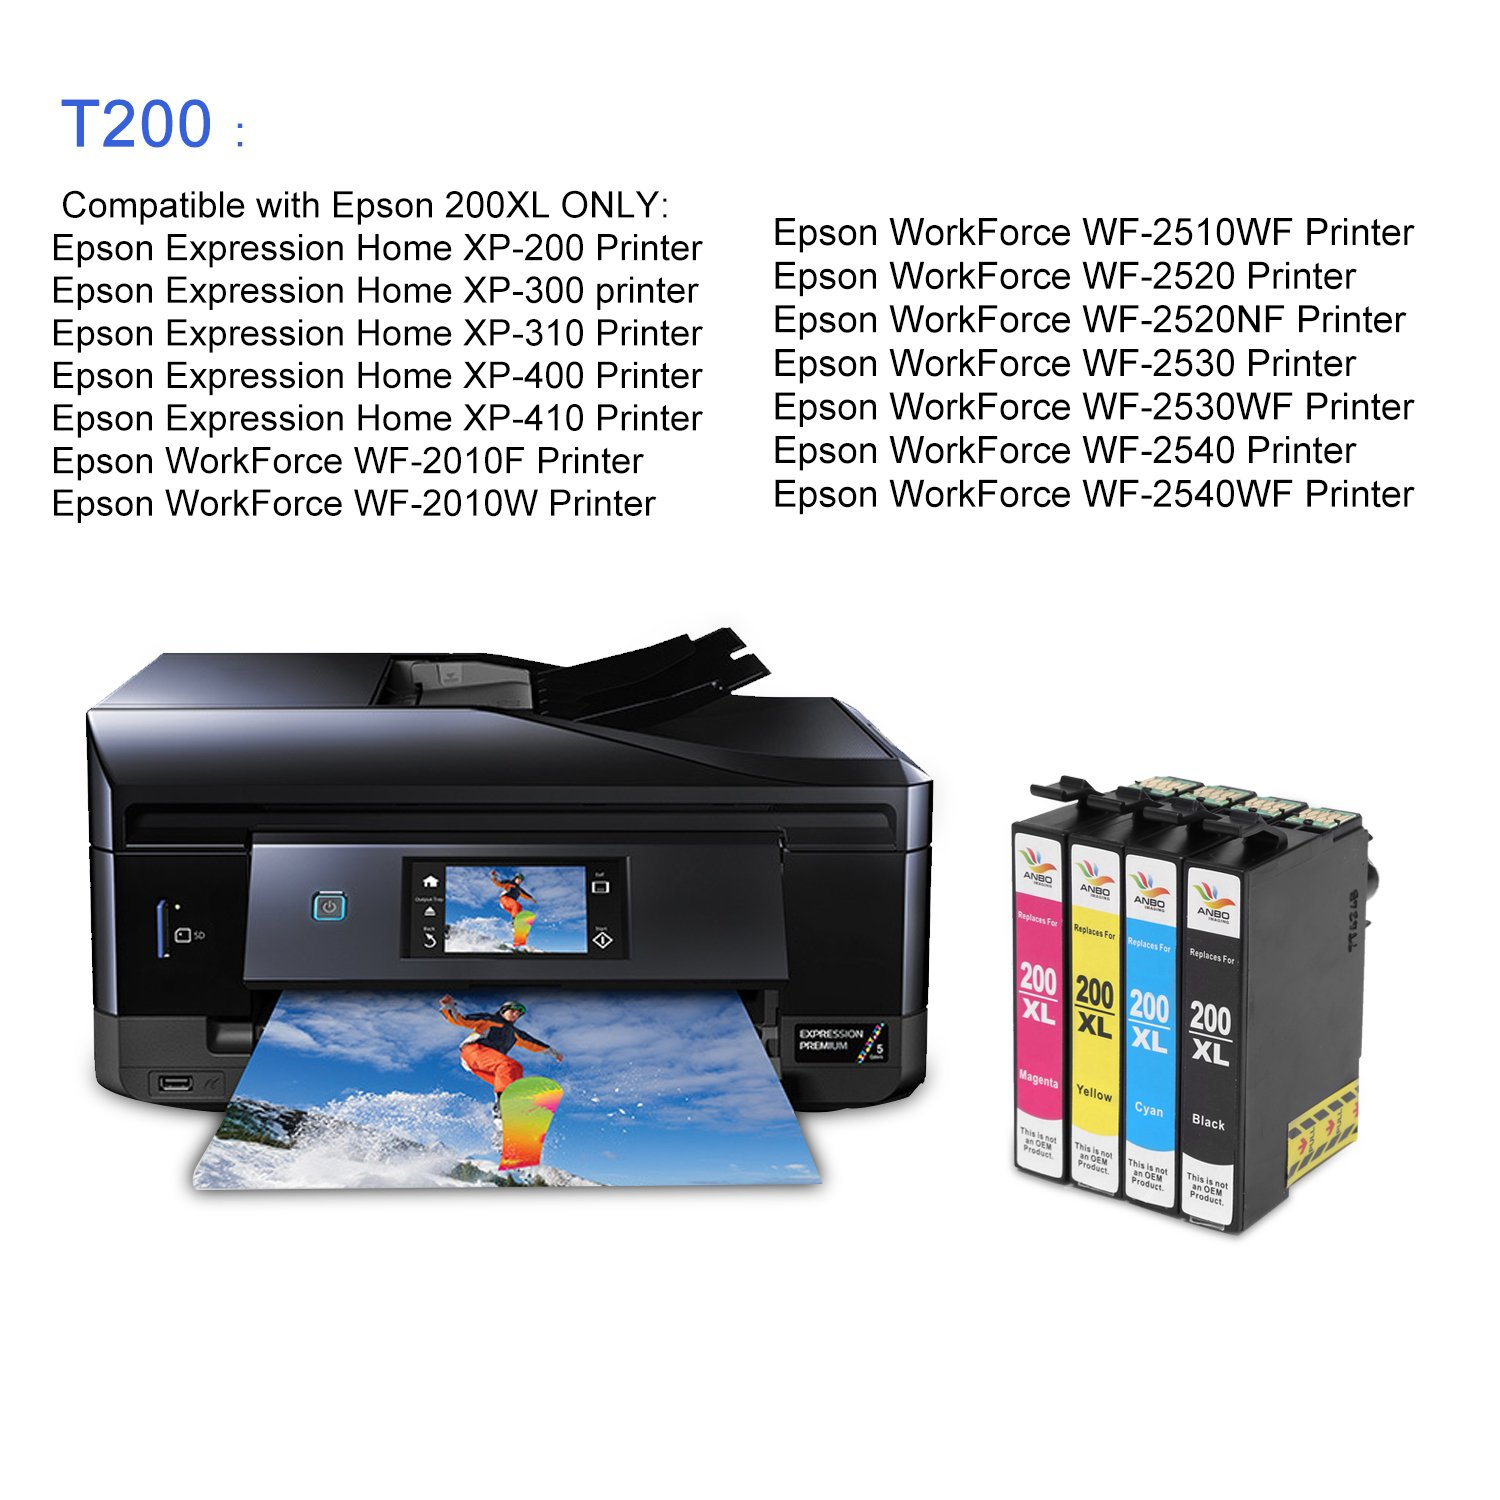 Amazon.com: Anbo 18Pack Remanufactured Cartridge Replacement for Epson 200  XL Ink Cartridges High Yield Compatible to XP-410 XP-310 WF-2540 WF-2530 WF-2520  ...